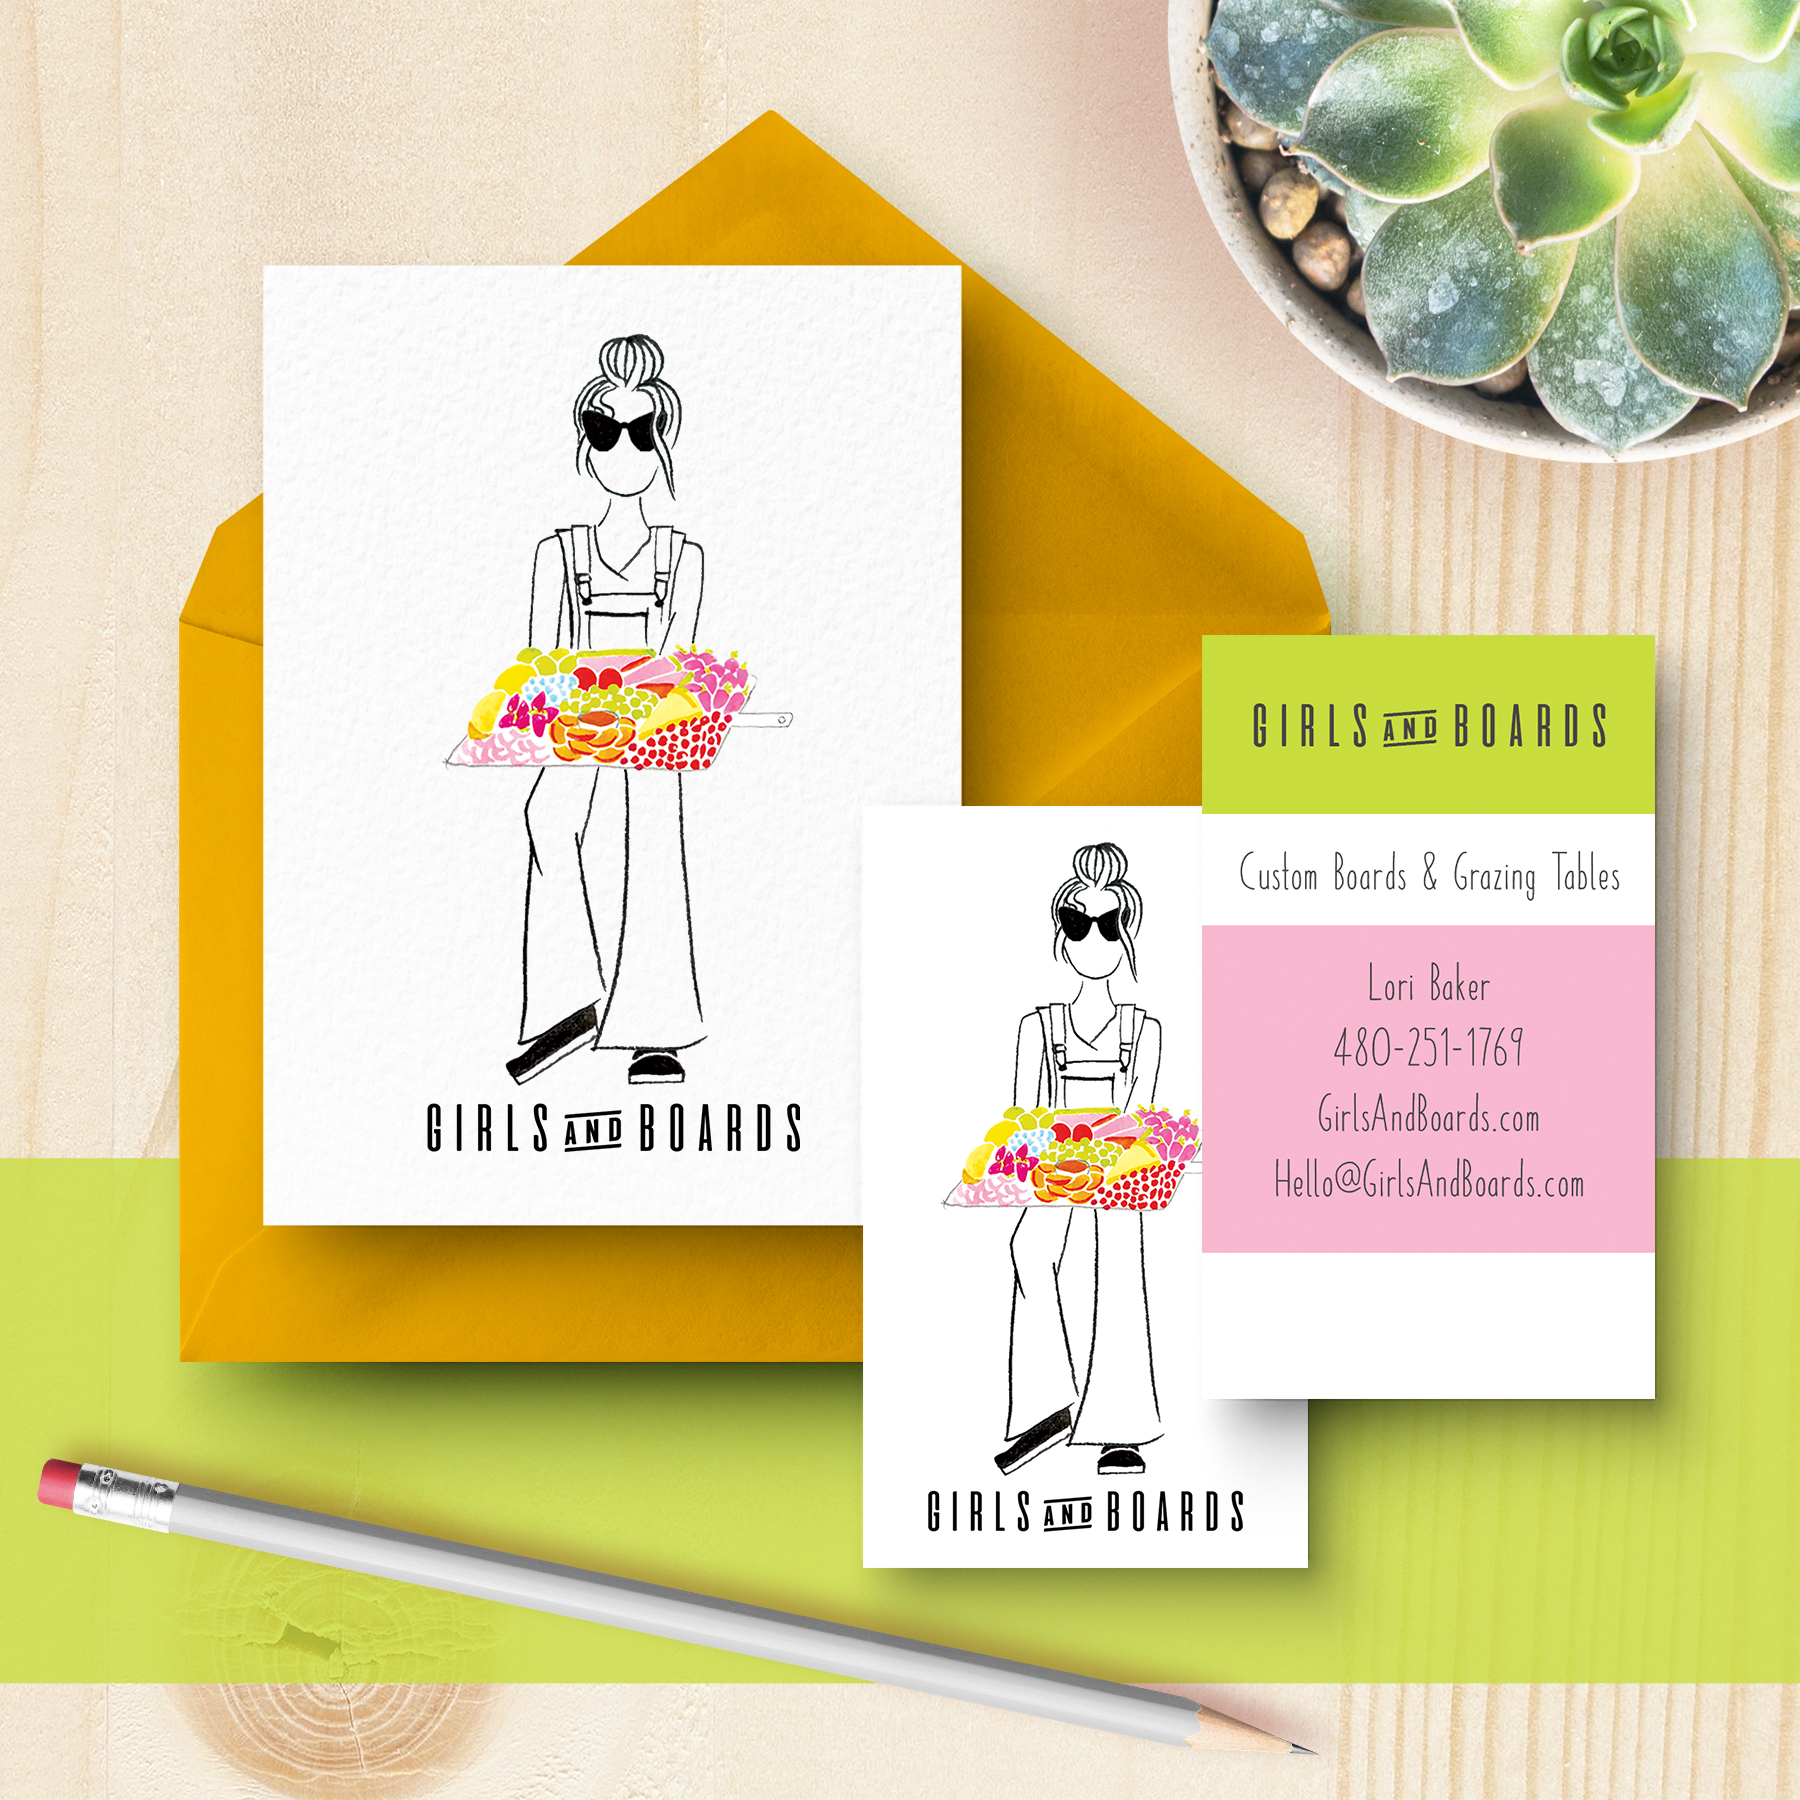 Girls and Boards: Custom Culinary Grazing Tables & Boards   Logo design featuring custom illustration and watercolor painting